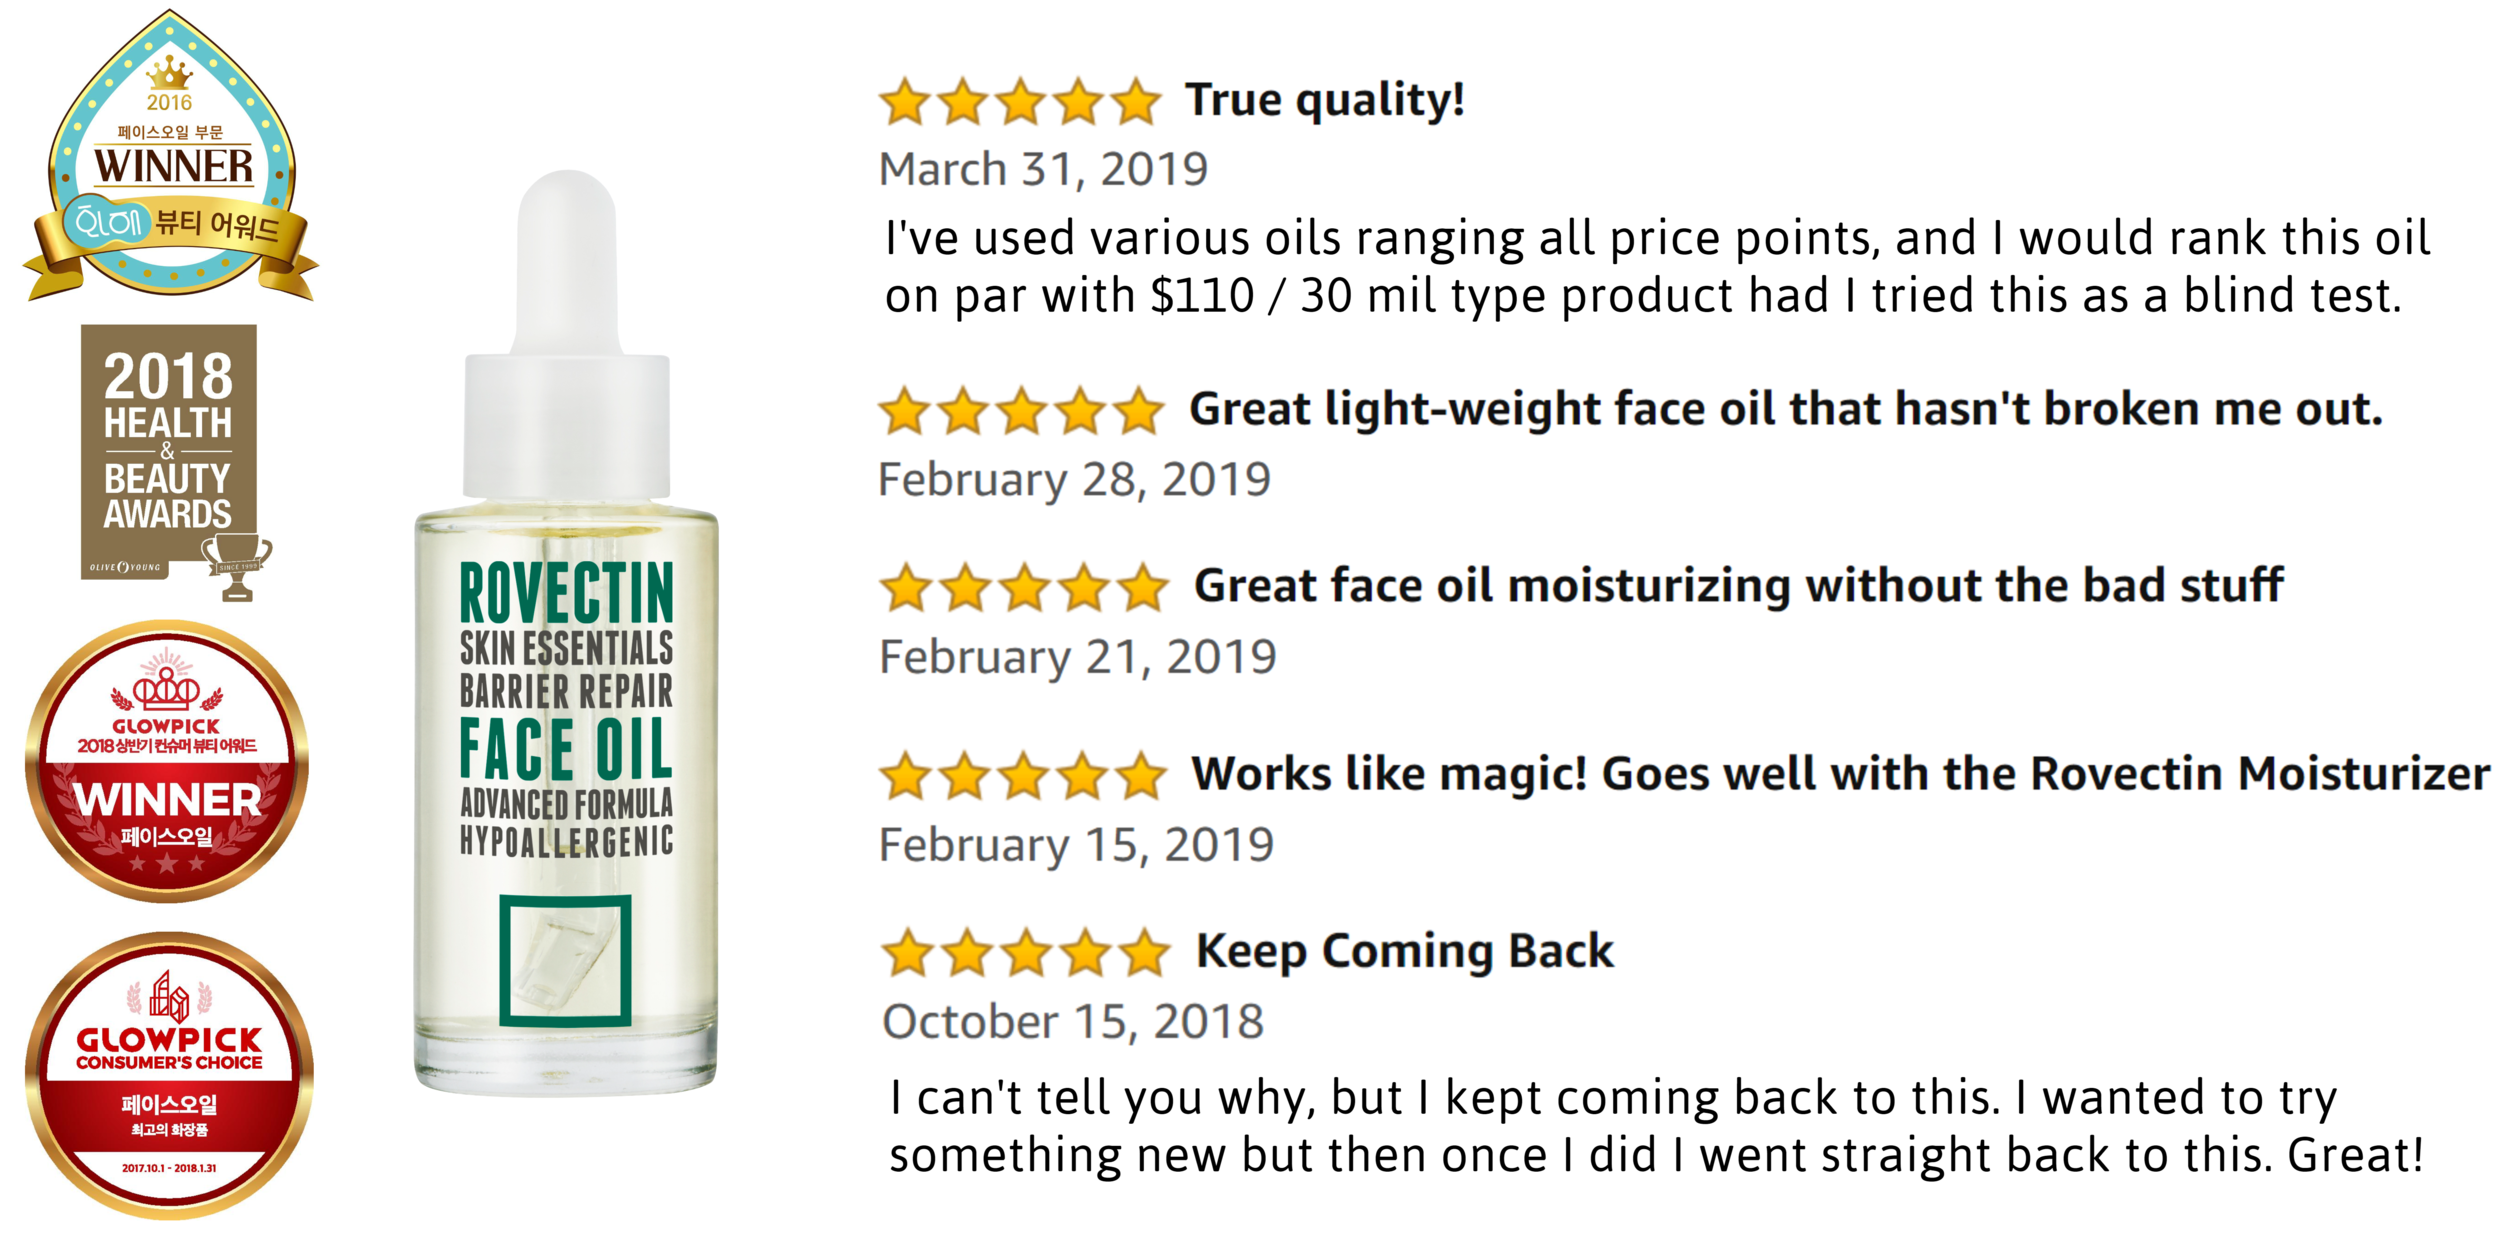 Rovectin Skin Essentials Barrier Repair Face Oil (review).png